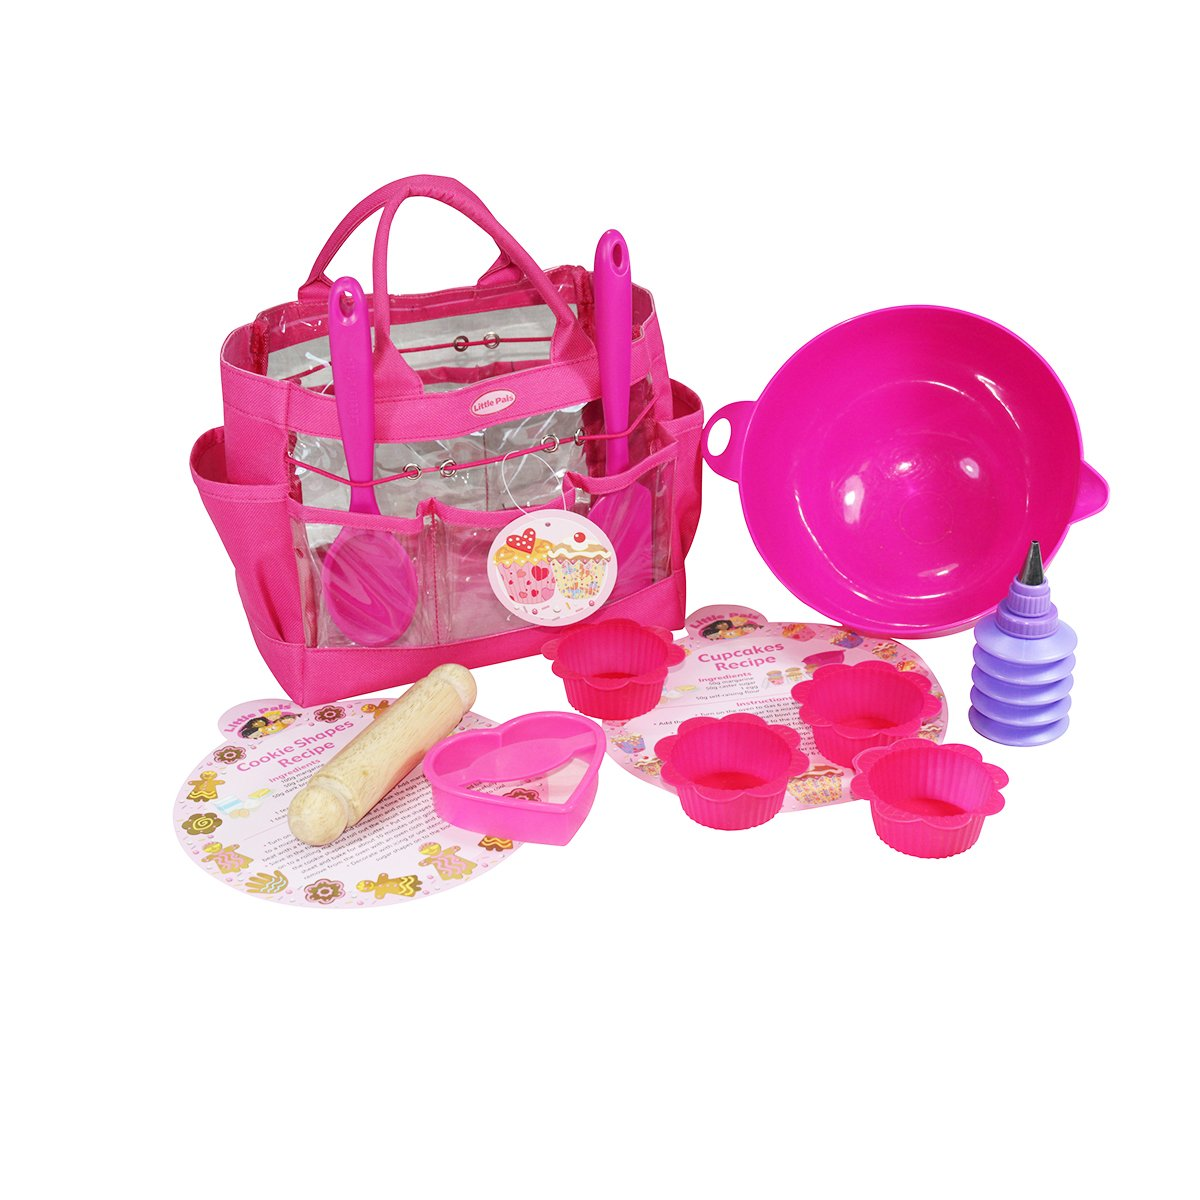 Little Pals Children's Cupcake and Cookie Baking Set in Carry Bag, Pink